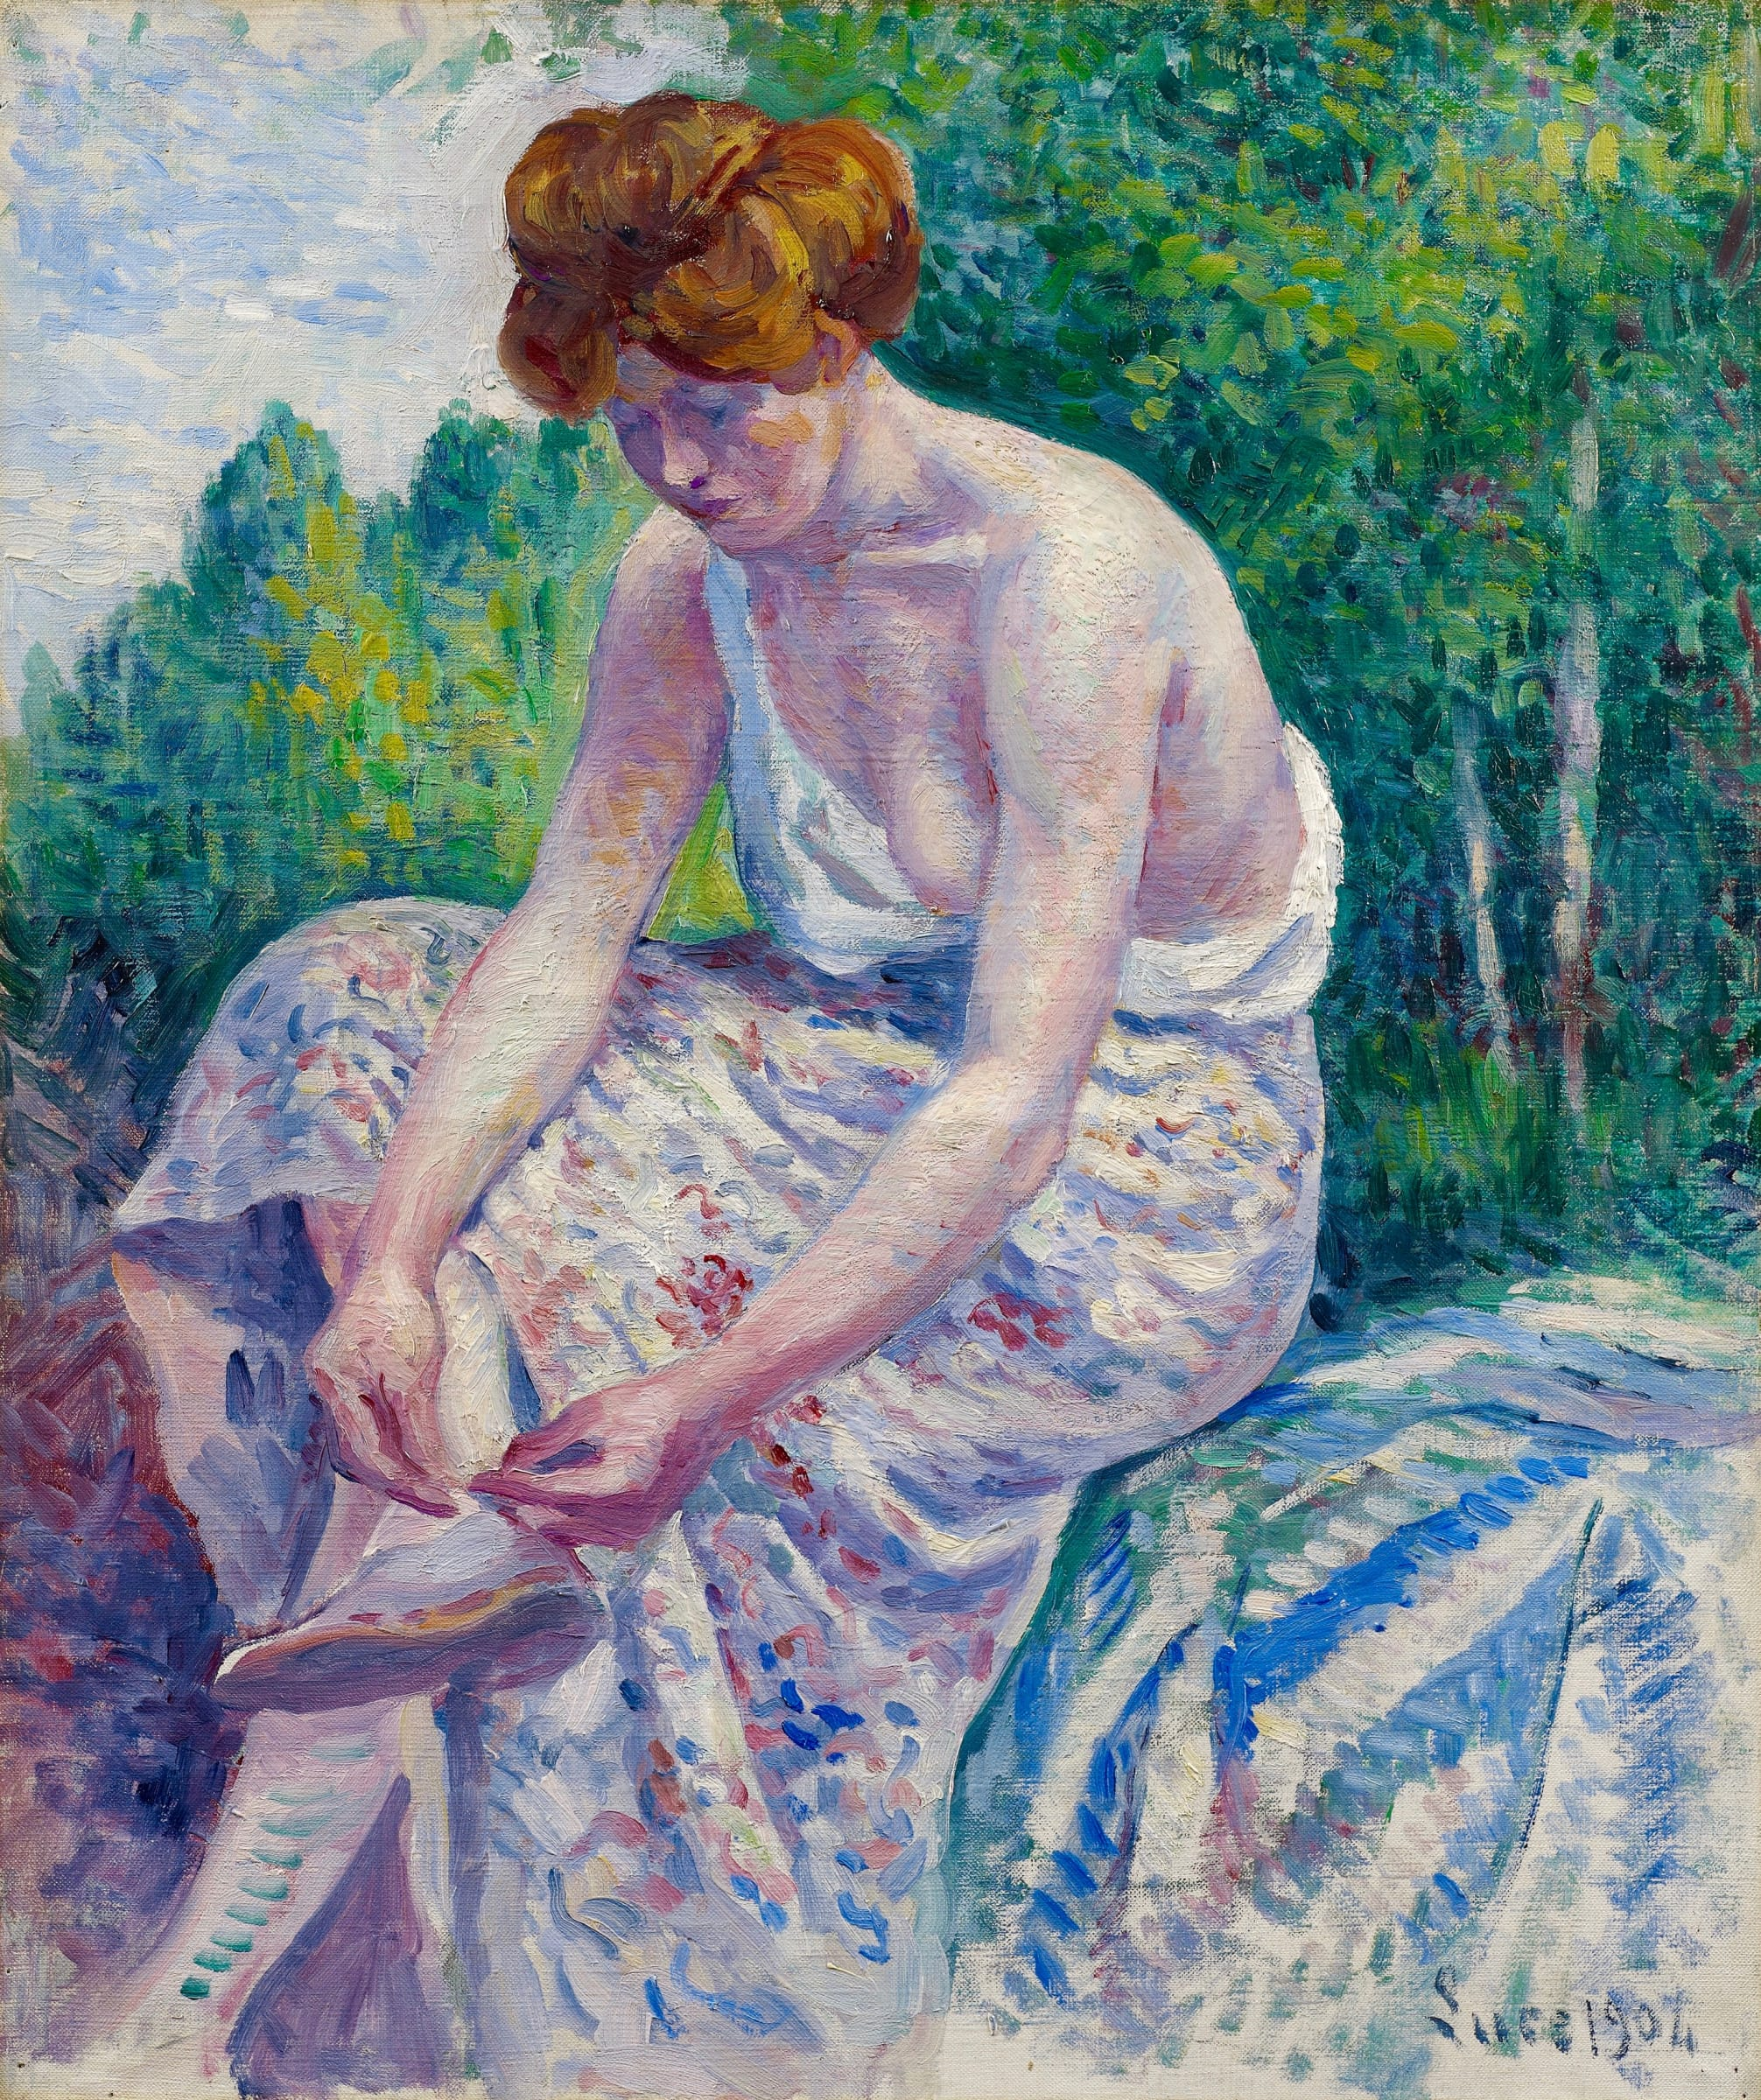 "<span class=""link fancybox-details-link""><a href=""/artists/61-maximilien-luce/works/9441-maximilien-luce-moulineux-jeune-femme-otant-sa-sandale-1904/"">View Detail Page</a></span><div class=""artist""><span class=""artist""><strong>Maximilien Luce</strong></span></div>